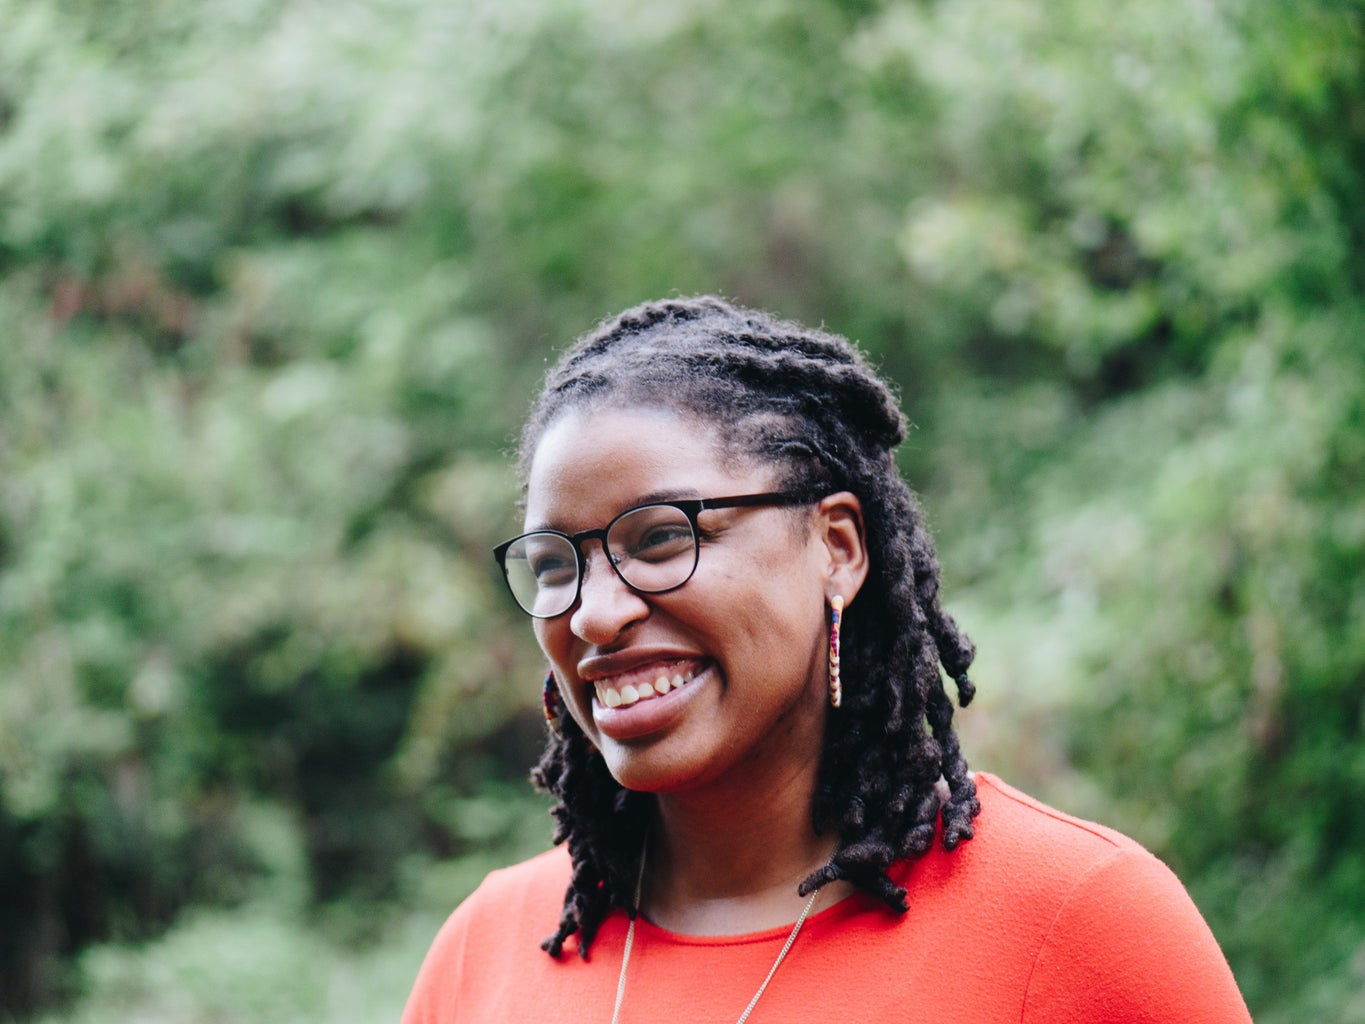 black woman with braided hair smiling